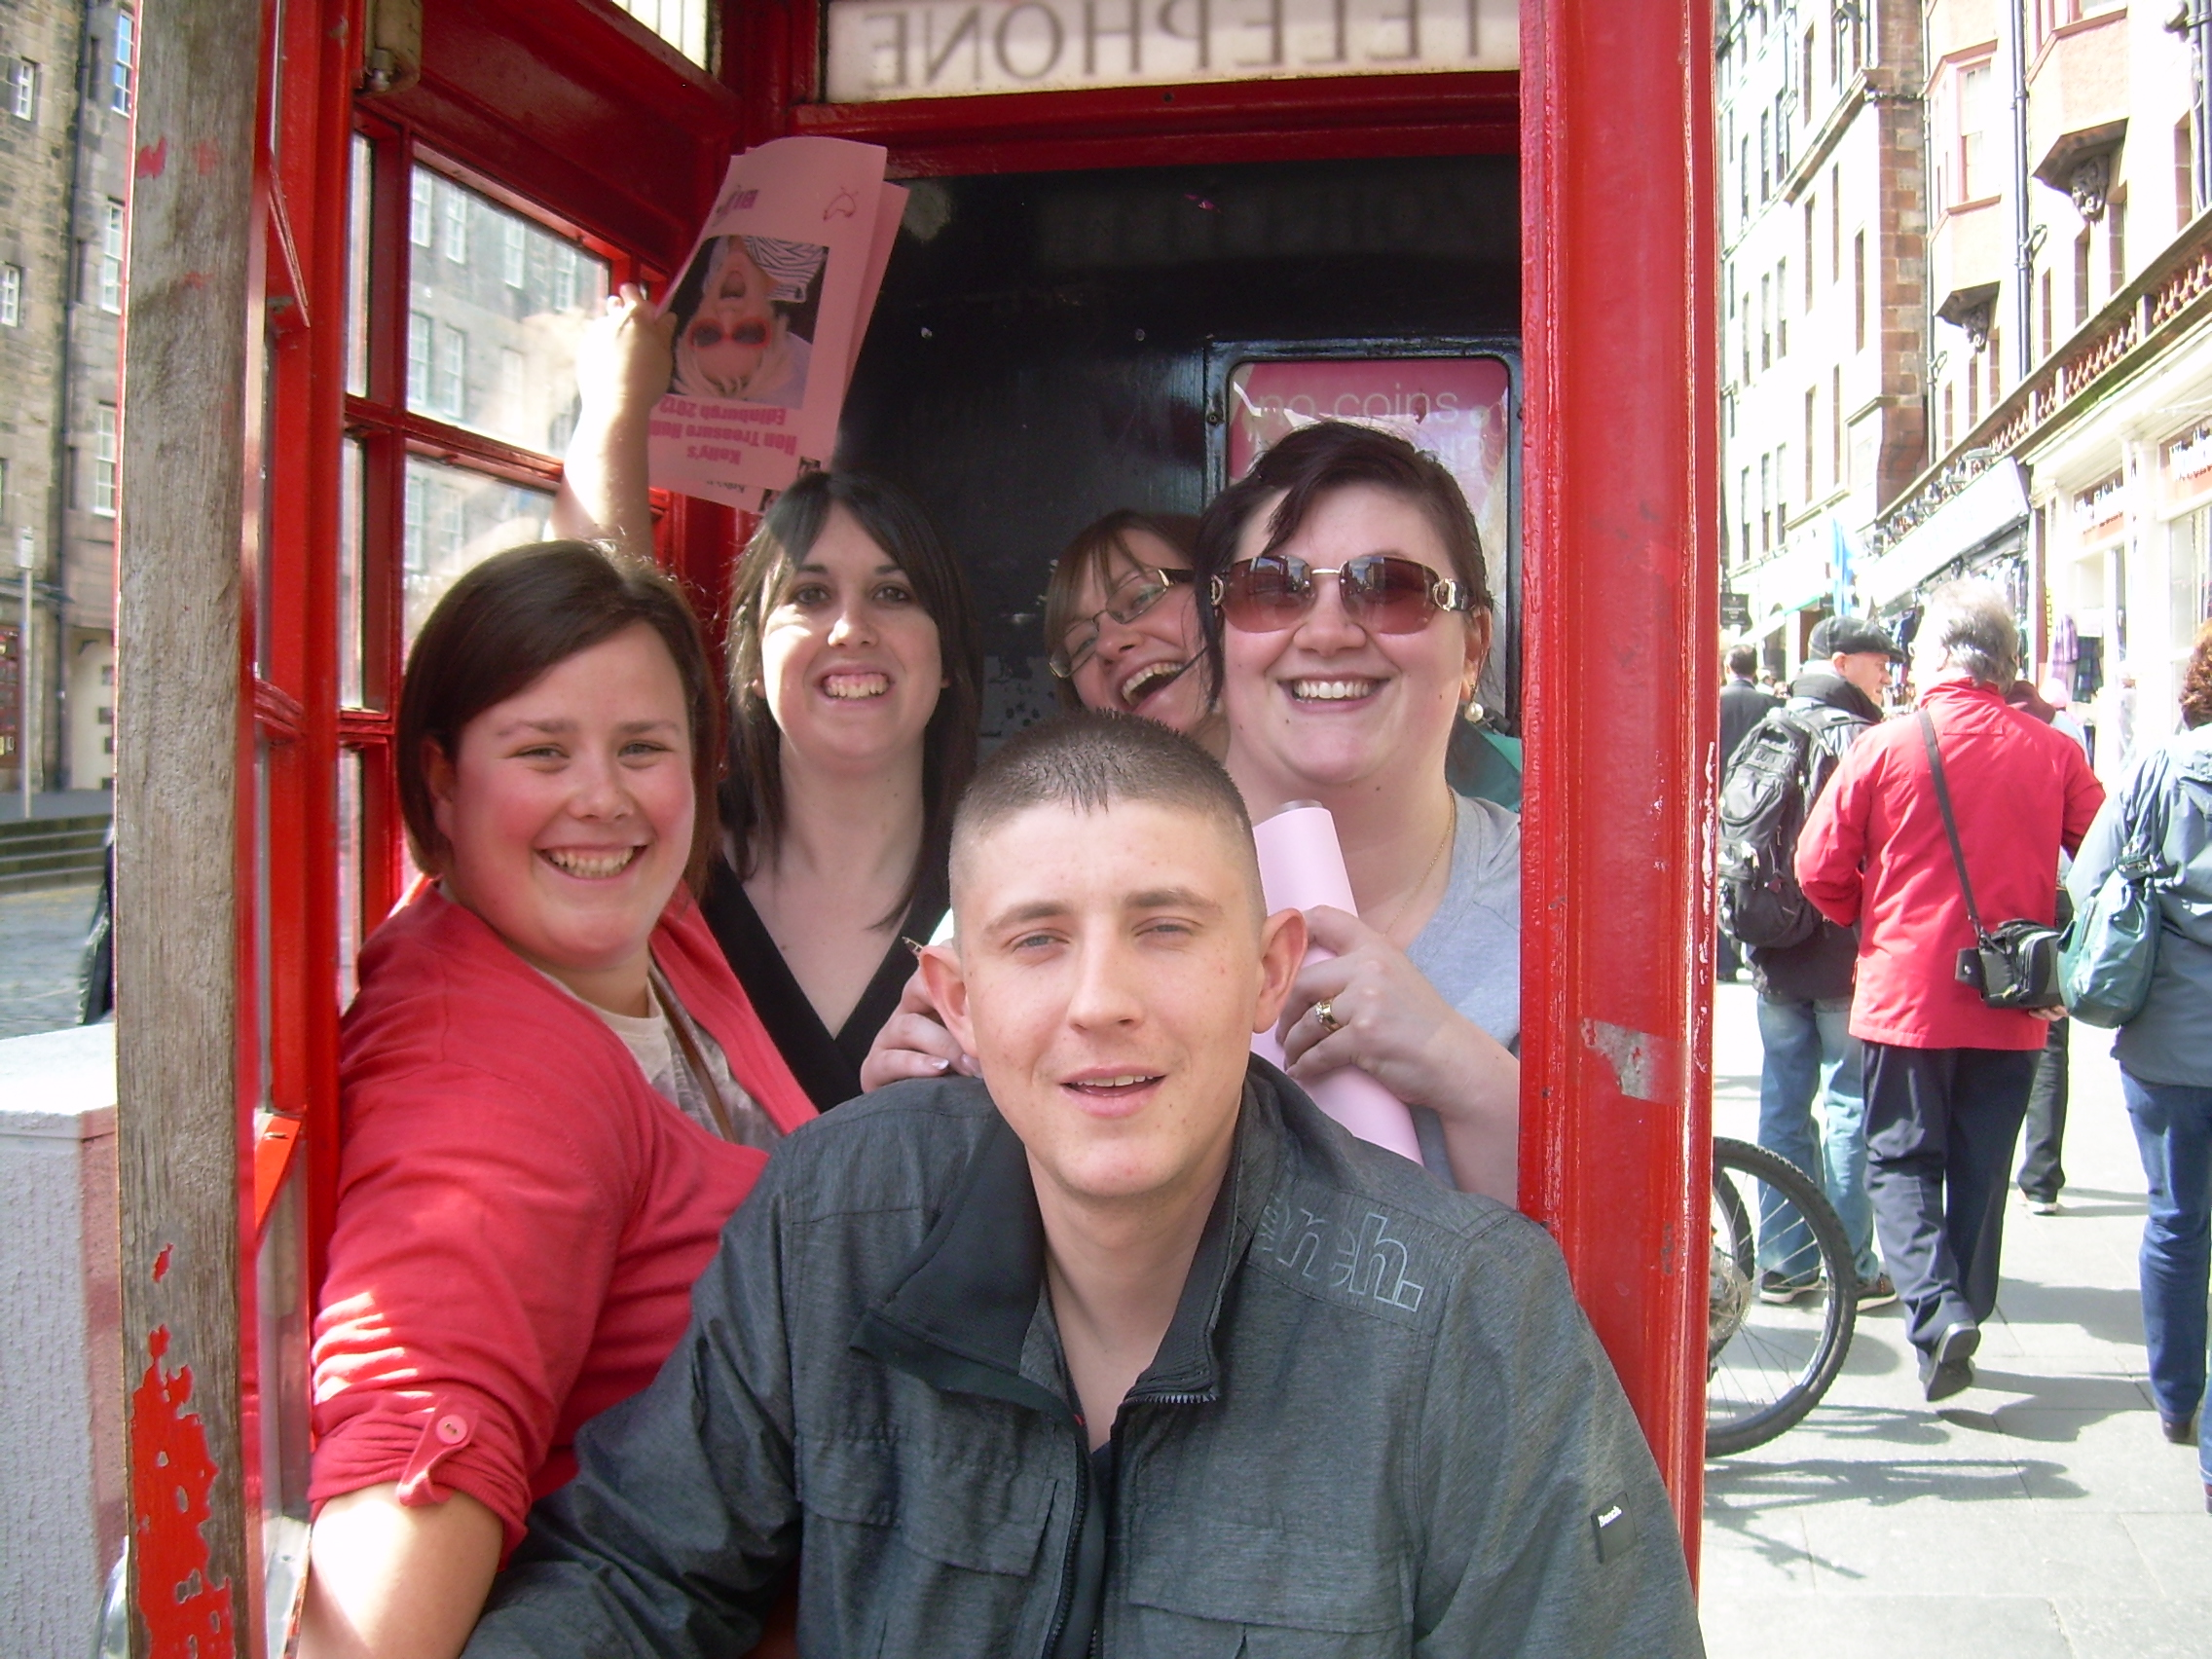 Hen party dare telephone box photo